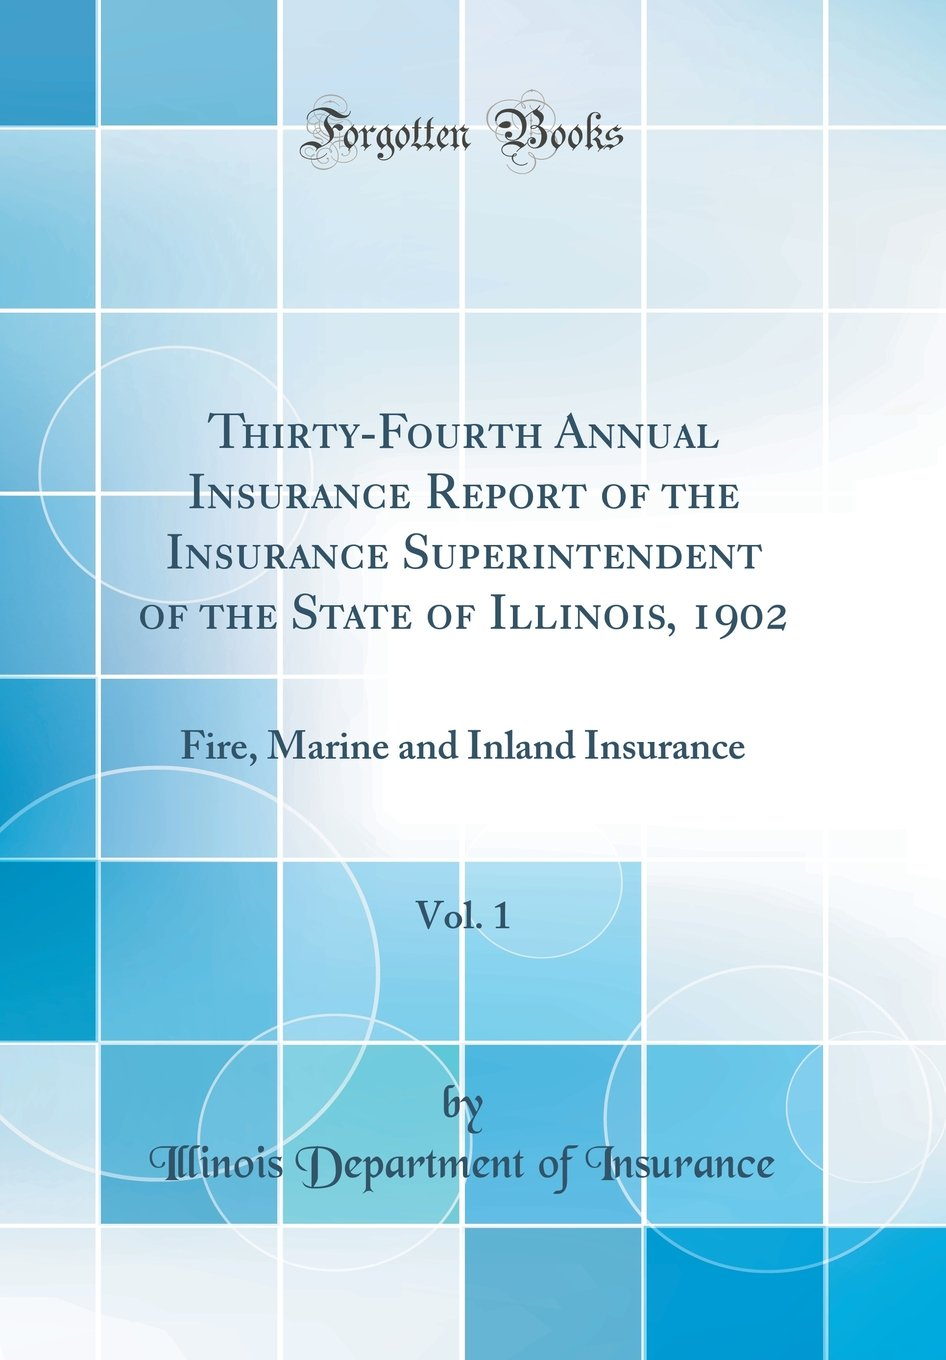 Download Thirty-Fourth Annual Insurance Report of the Insurance Superintendent of the State of Illinois, 1902, Vol. 1: Fire, Marine and Inland Insurance (Classic Reprint) ebook